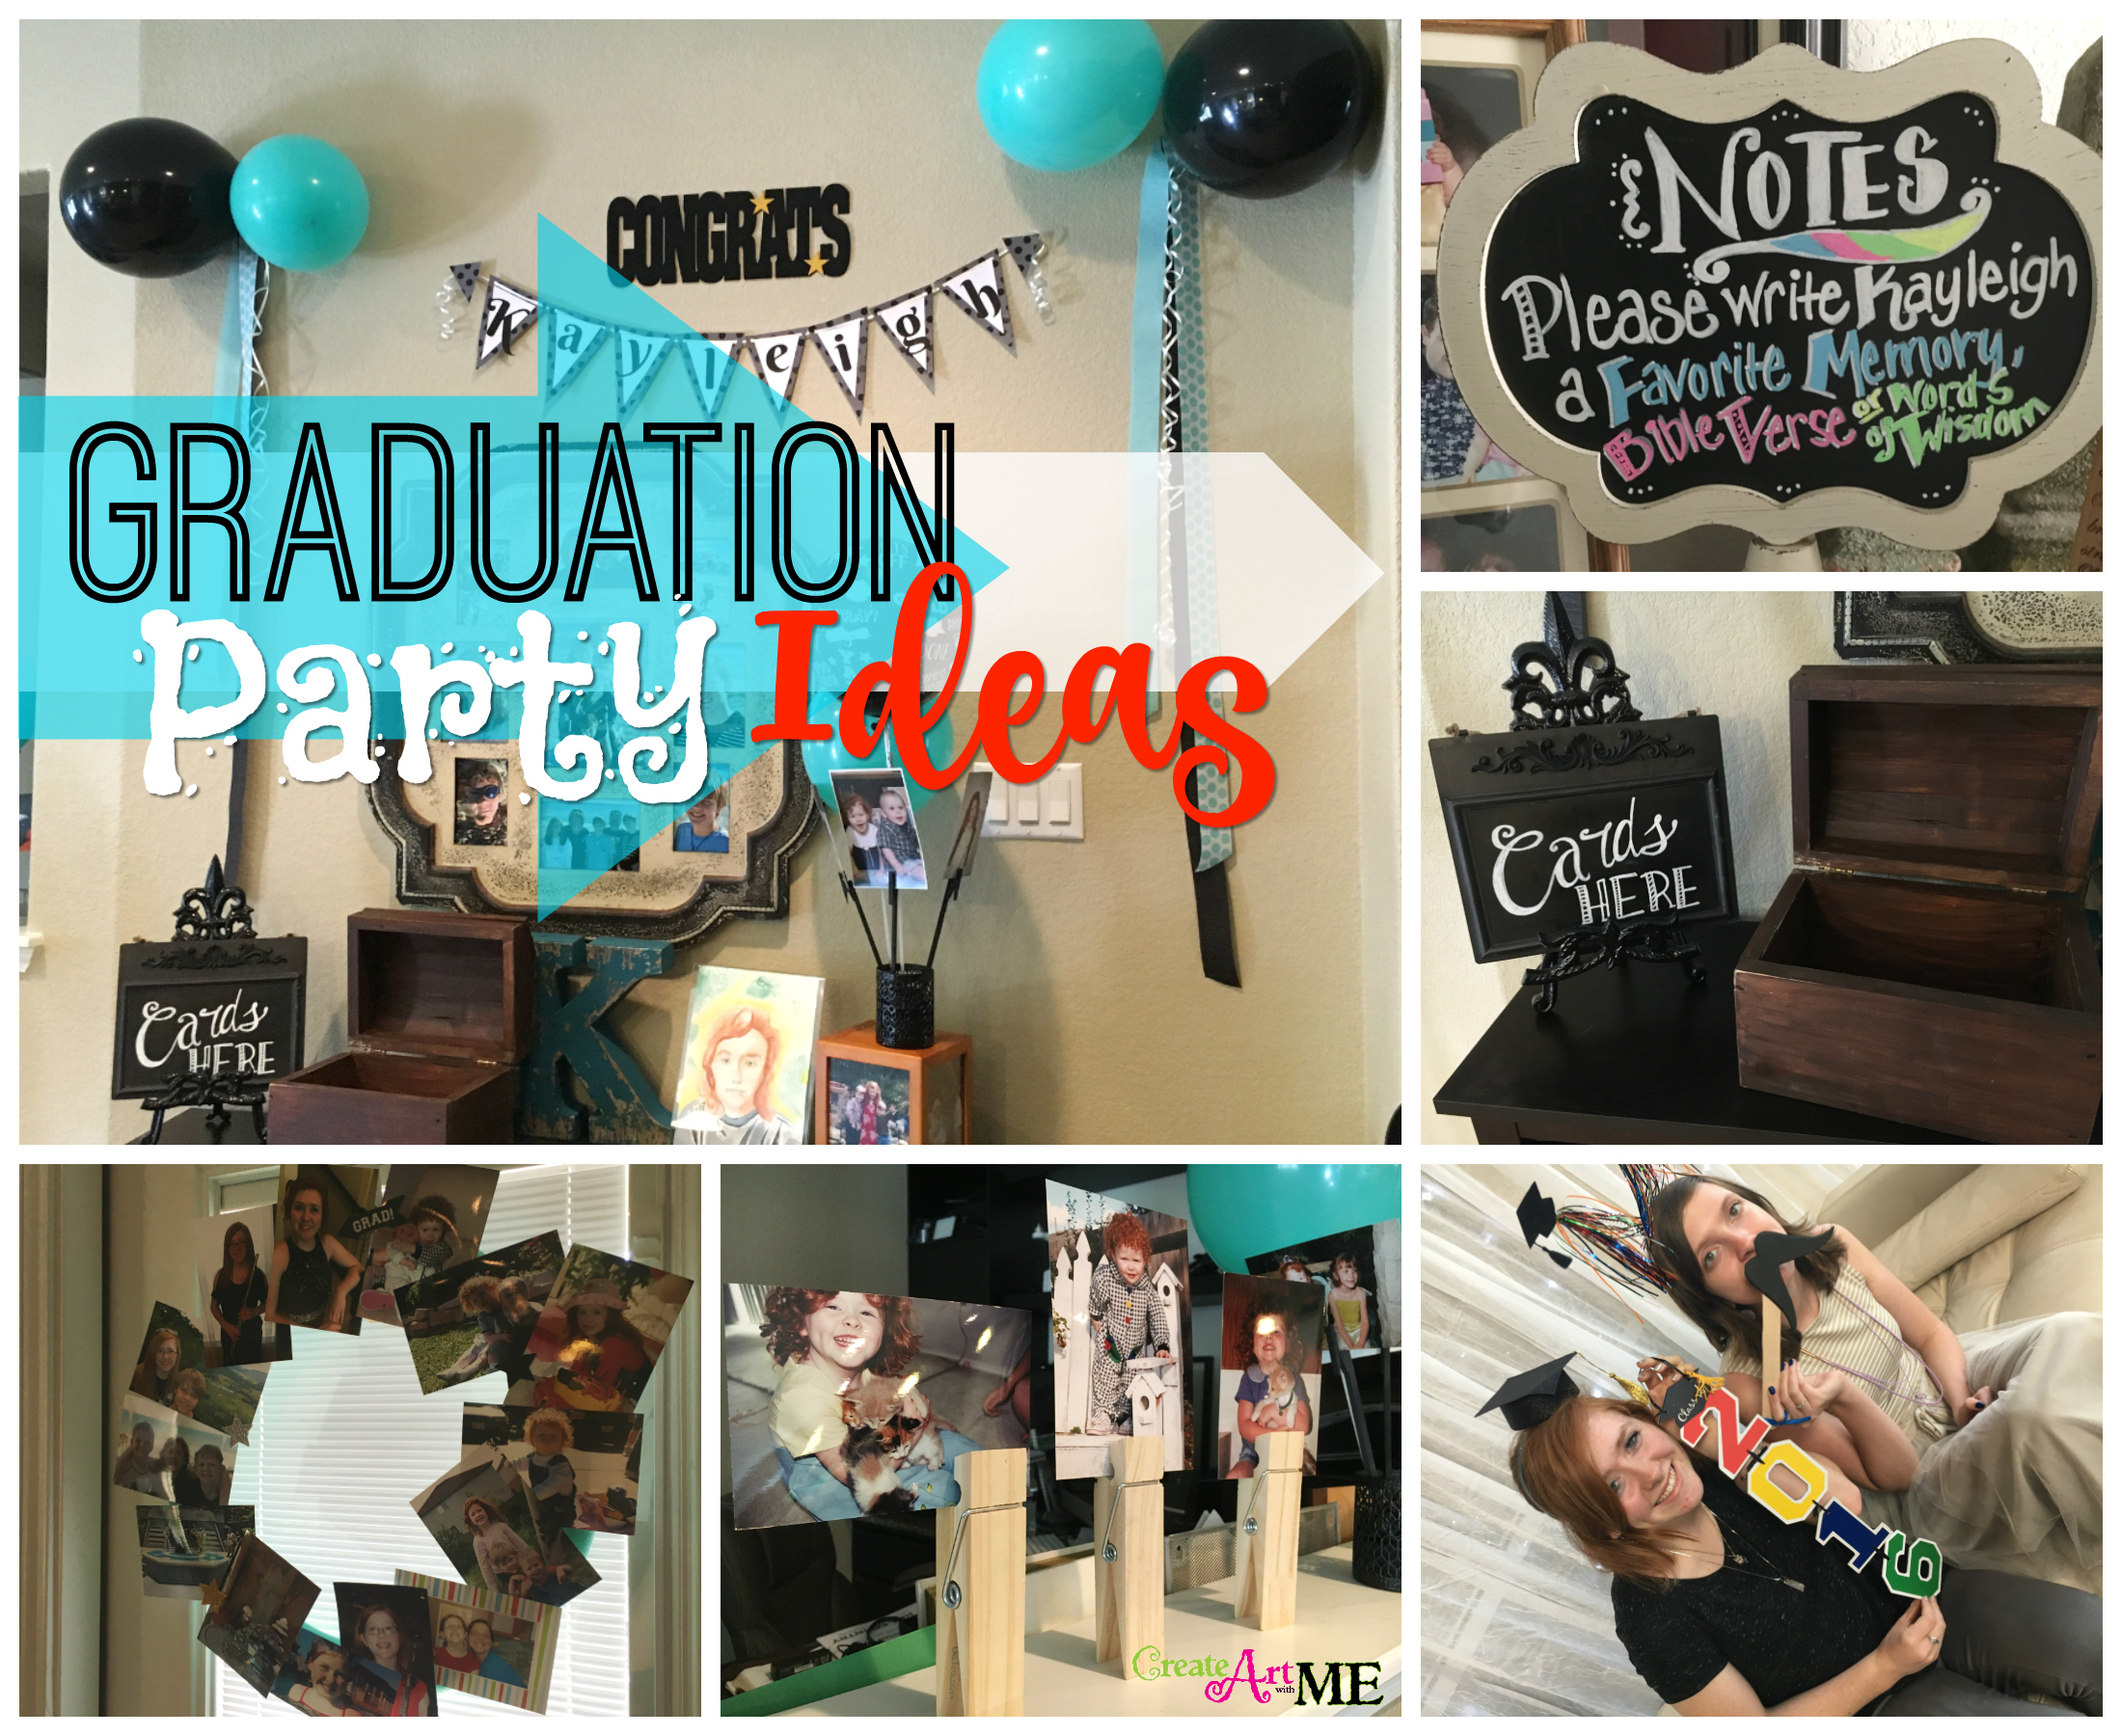 Graduation Party Ideas Create Art with ME